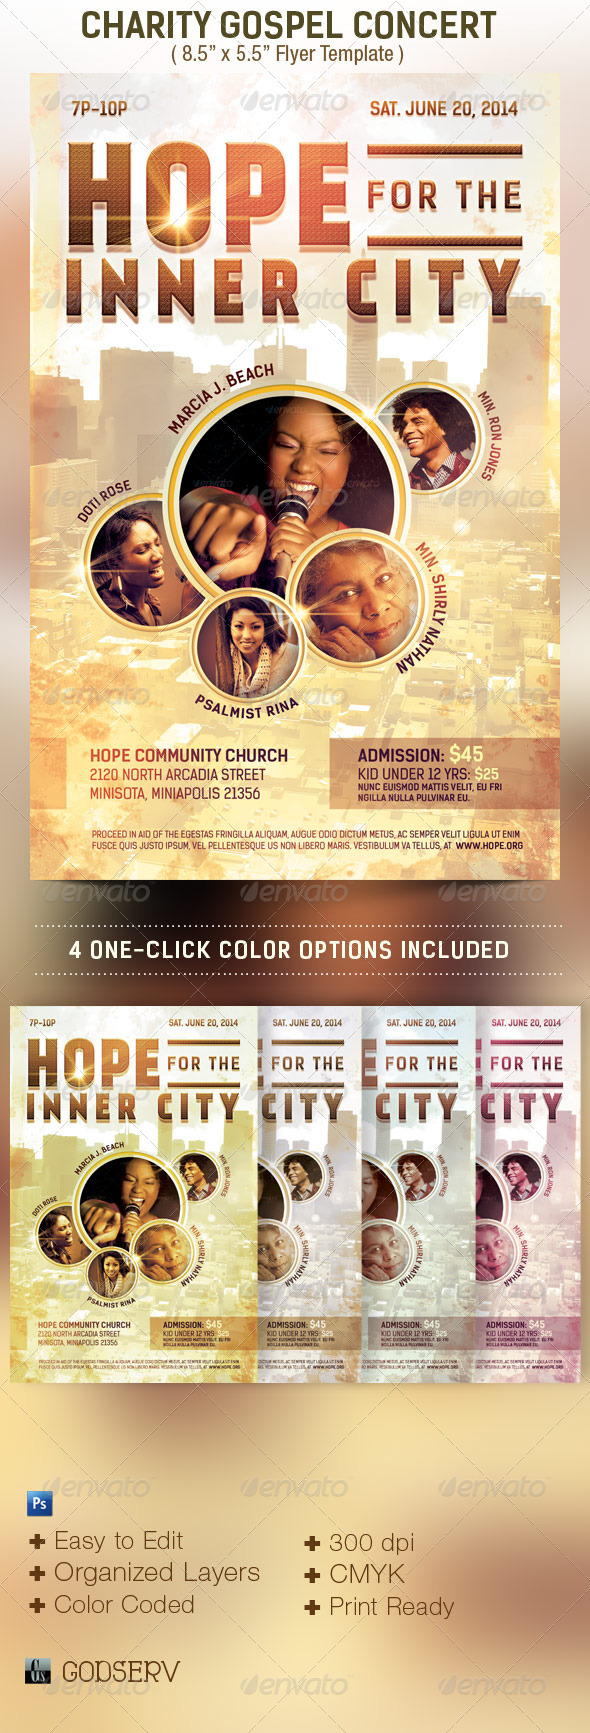 Charity Concert Flyer Template - Church Flyers